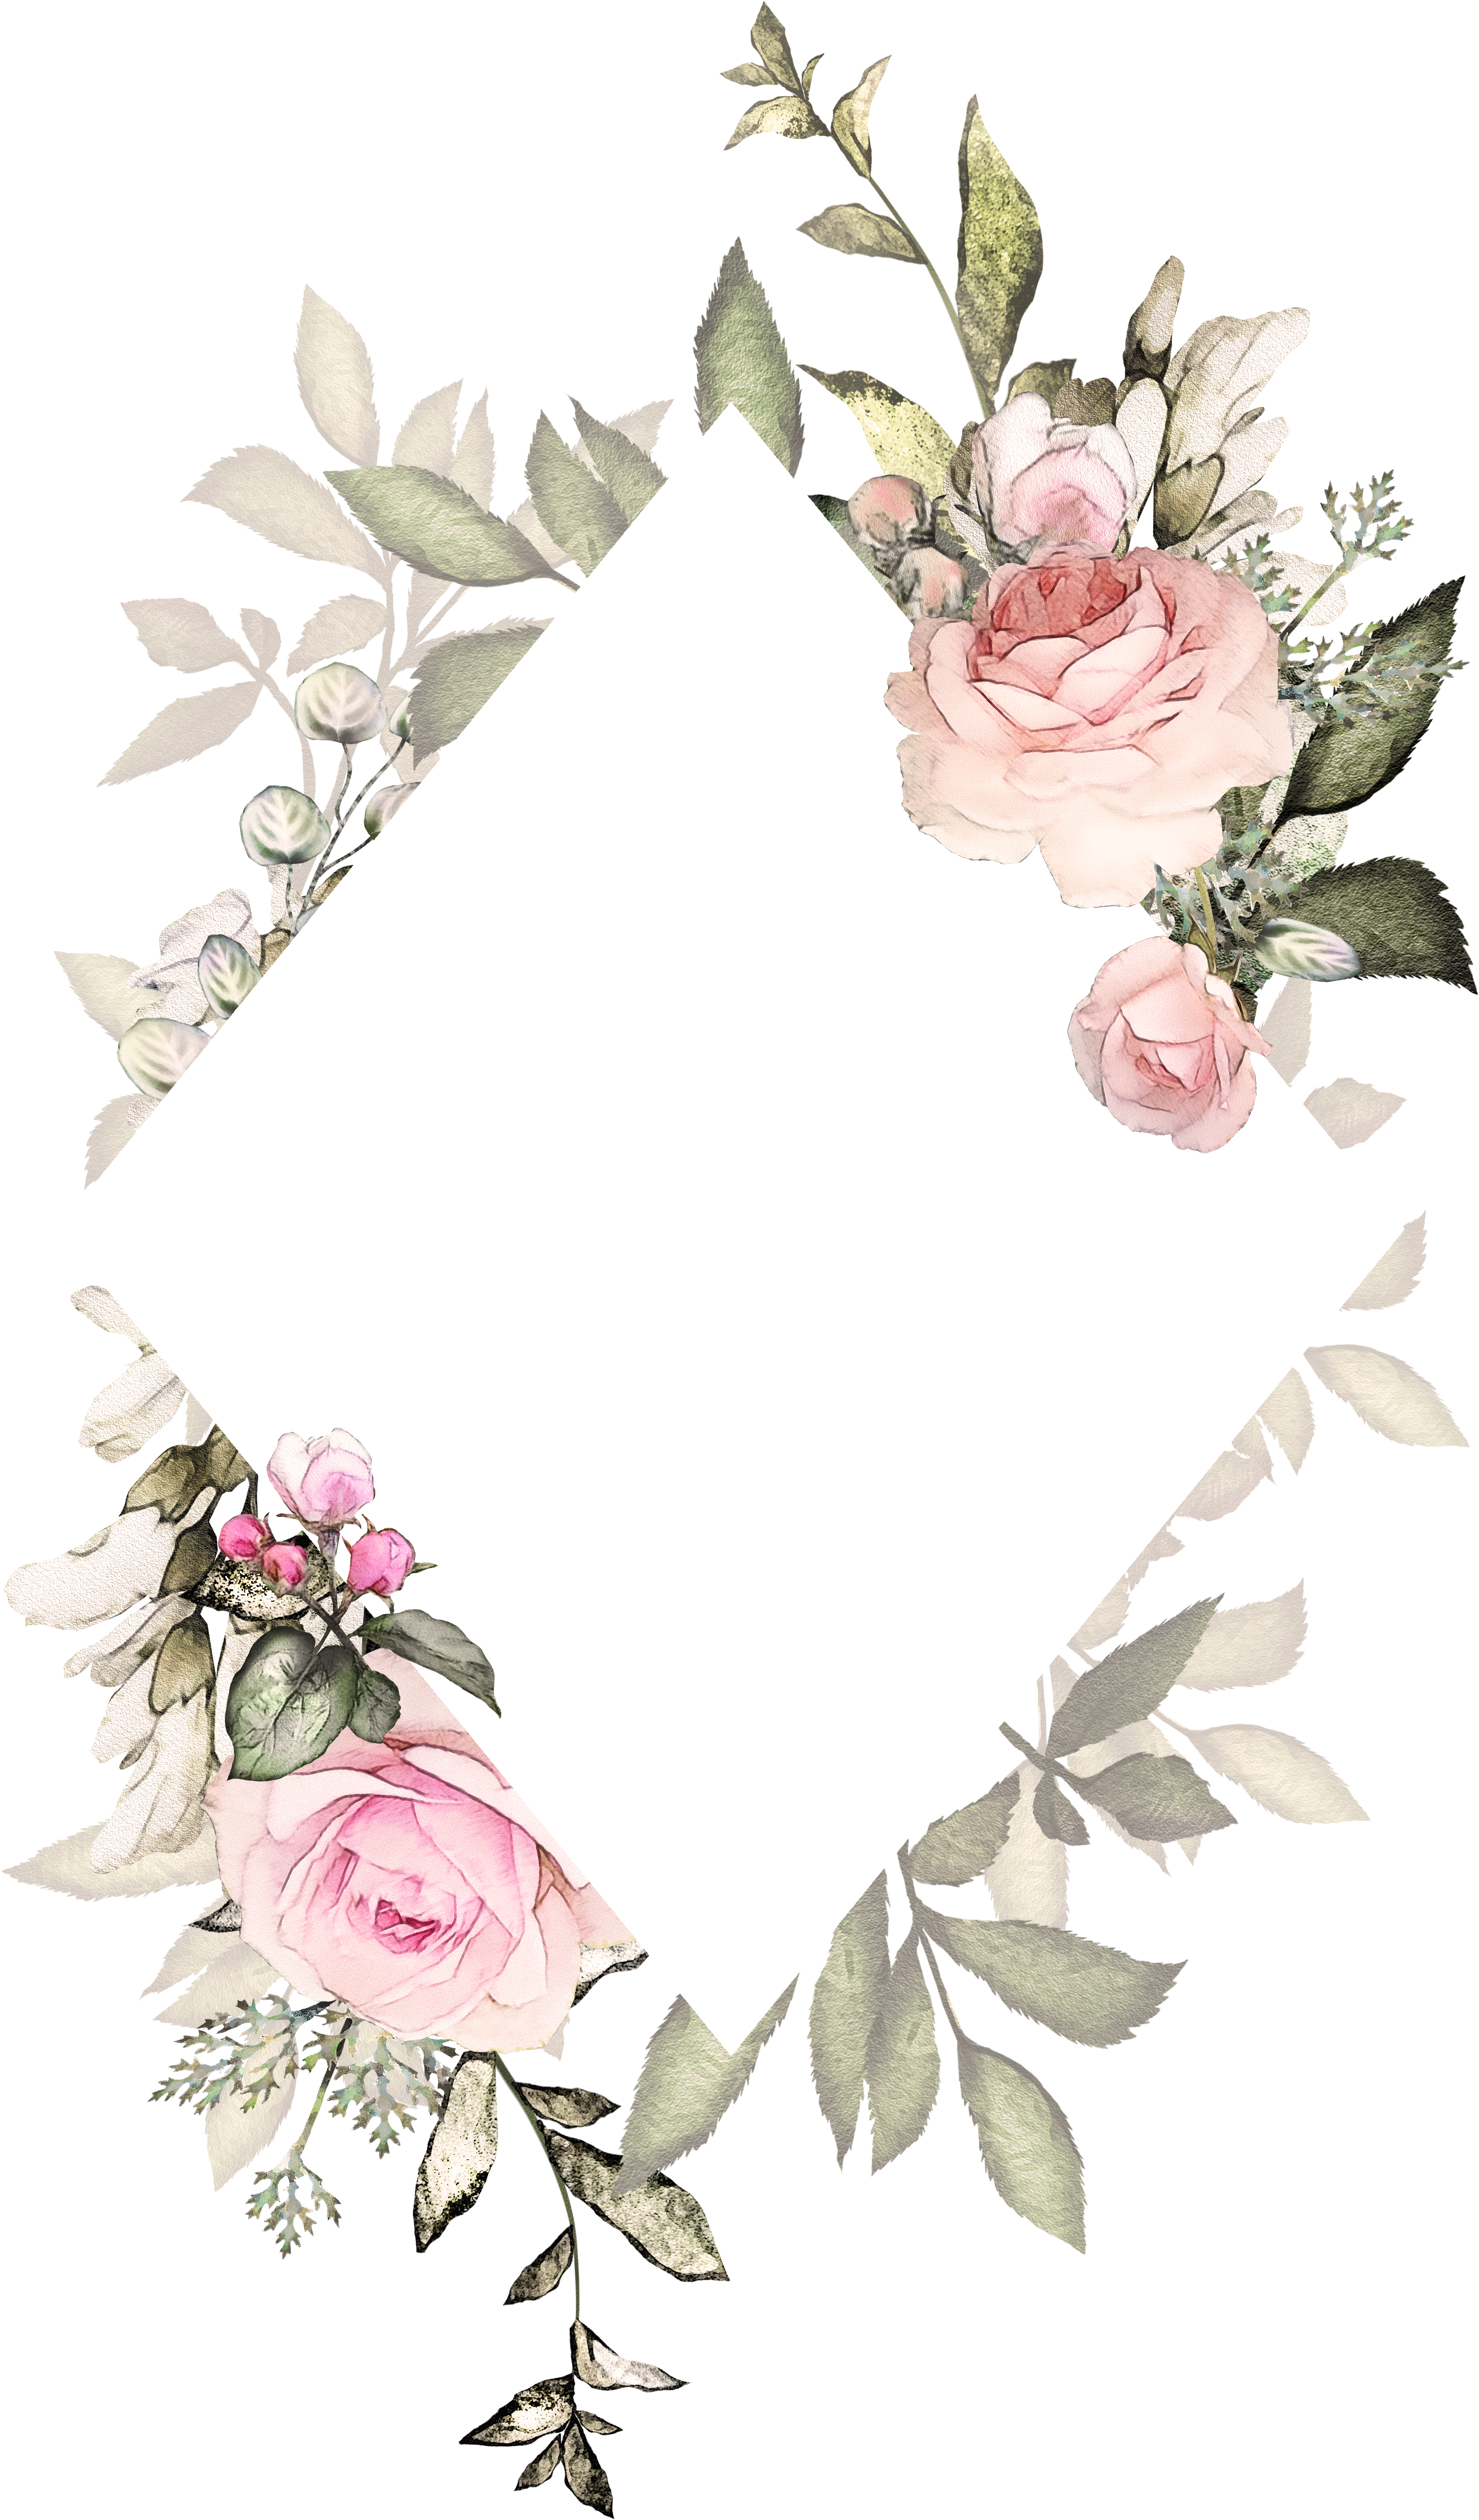 Transparent flower background clipart - Discover Ideas About Phone Backgrounds - Wedding Invitation Transparent Background